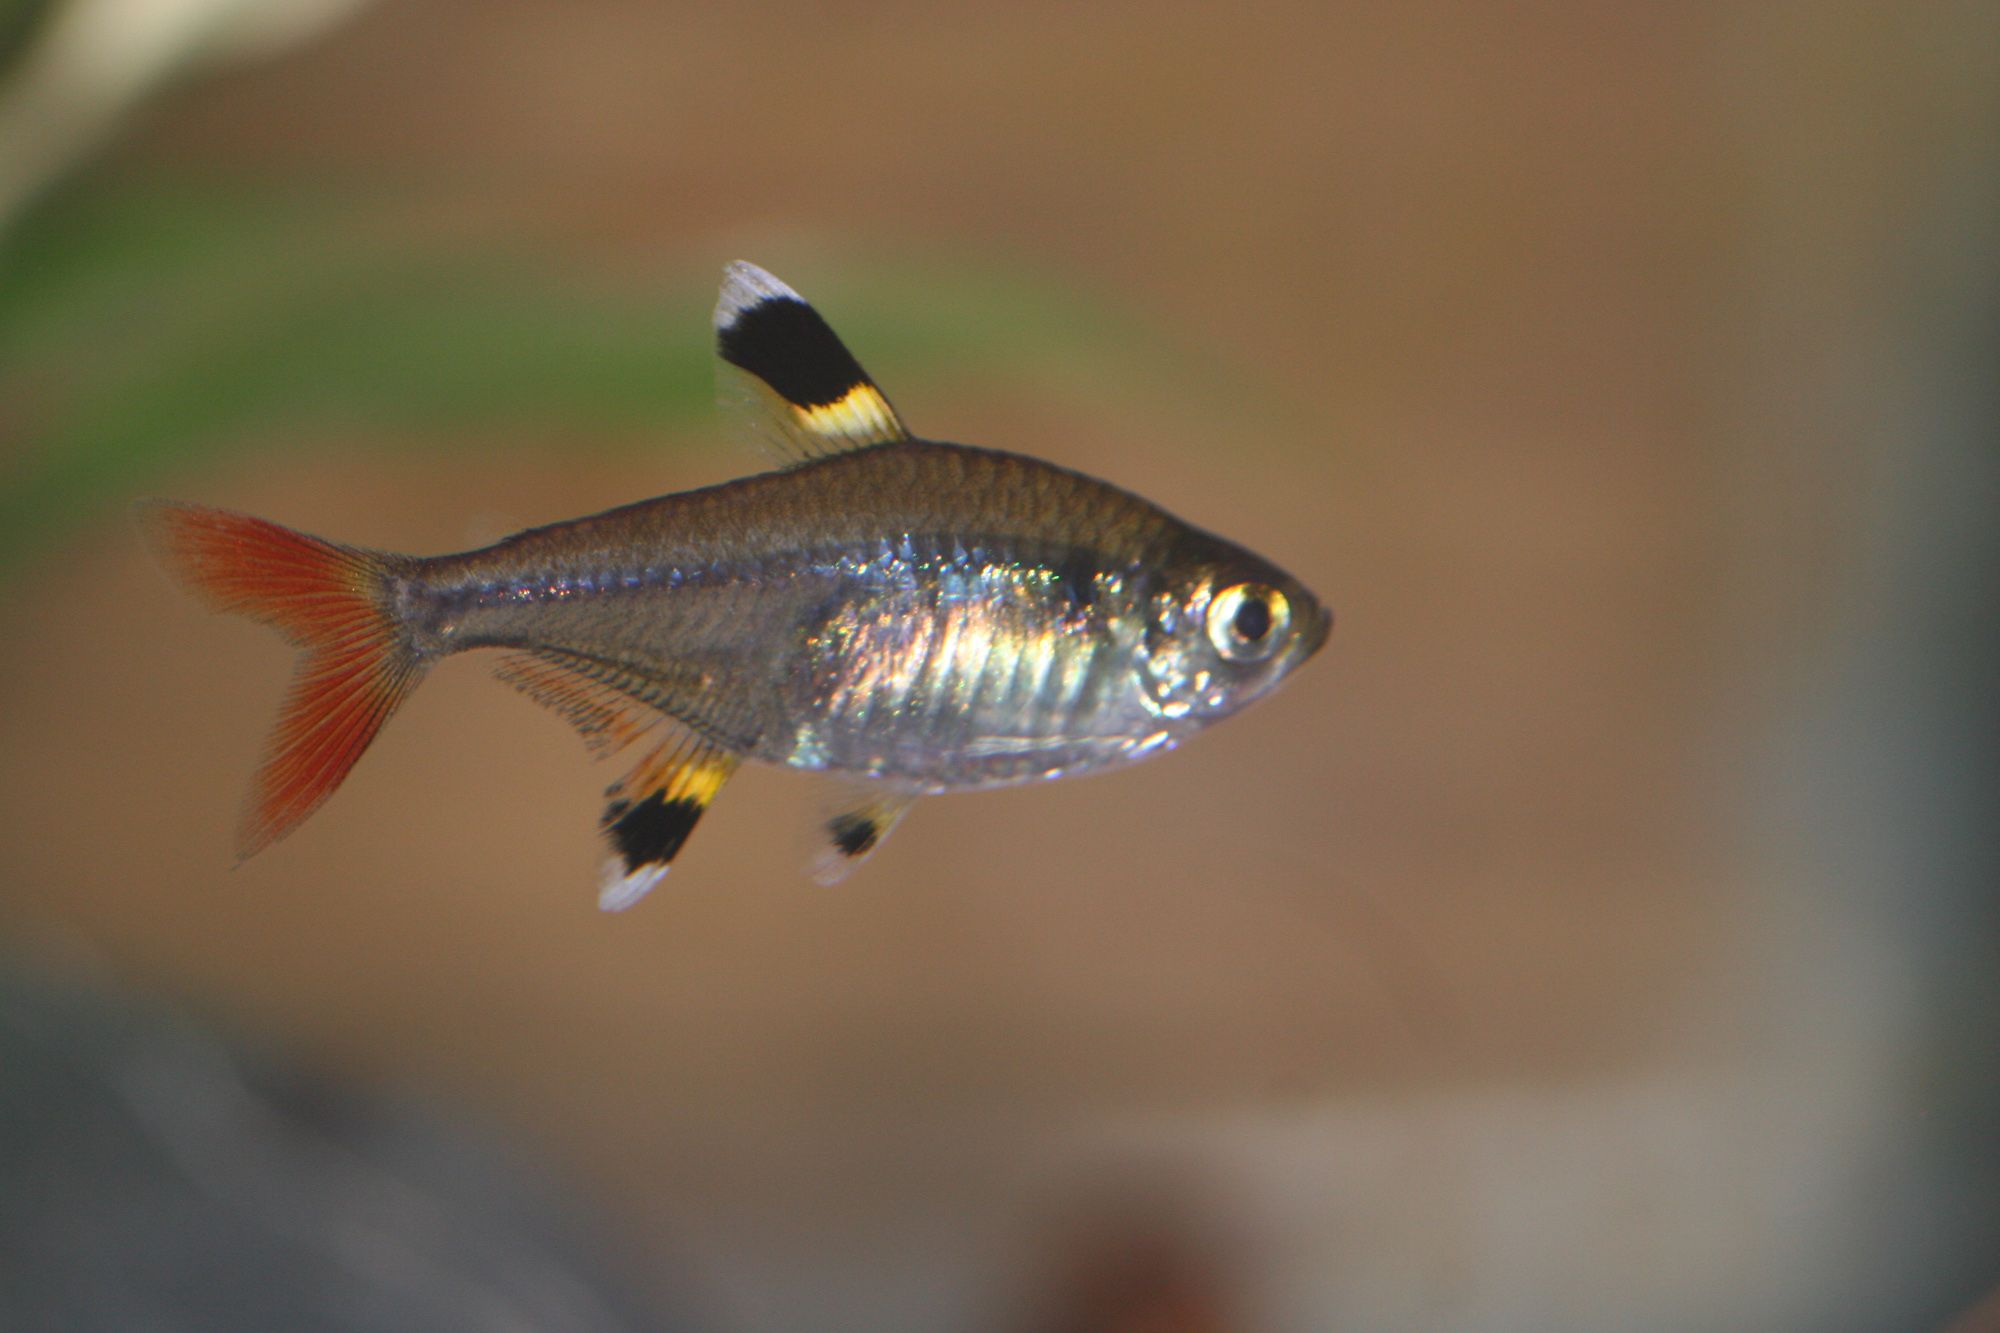 Freshwater aquarium fish silver with red fins - Explore Freshwater Aquarium Fish Fish Aquariums And More